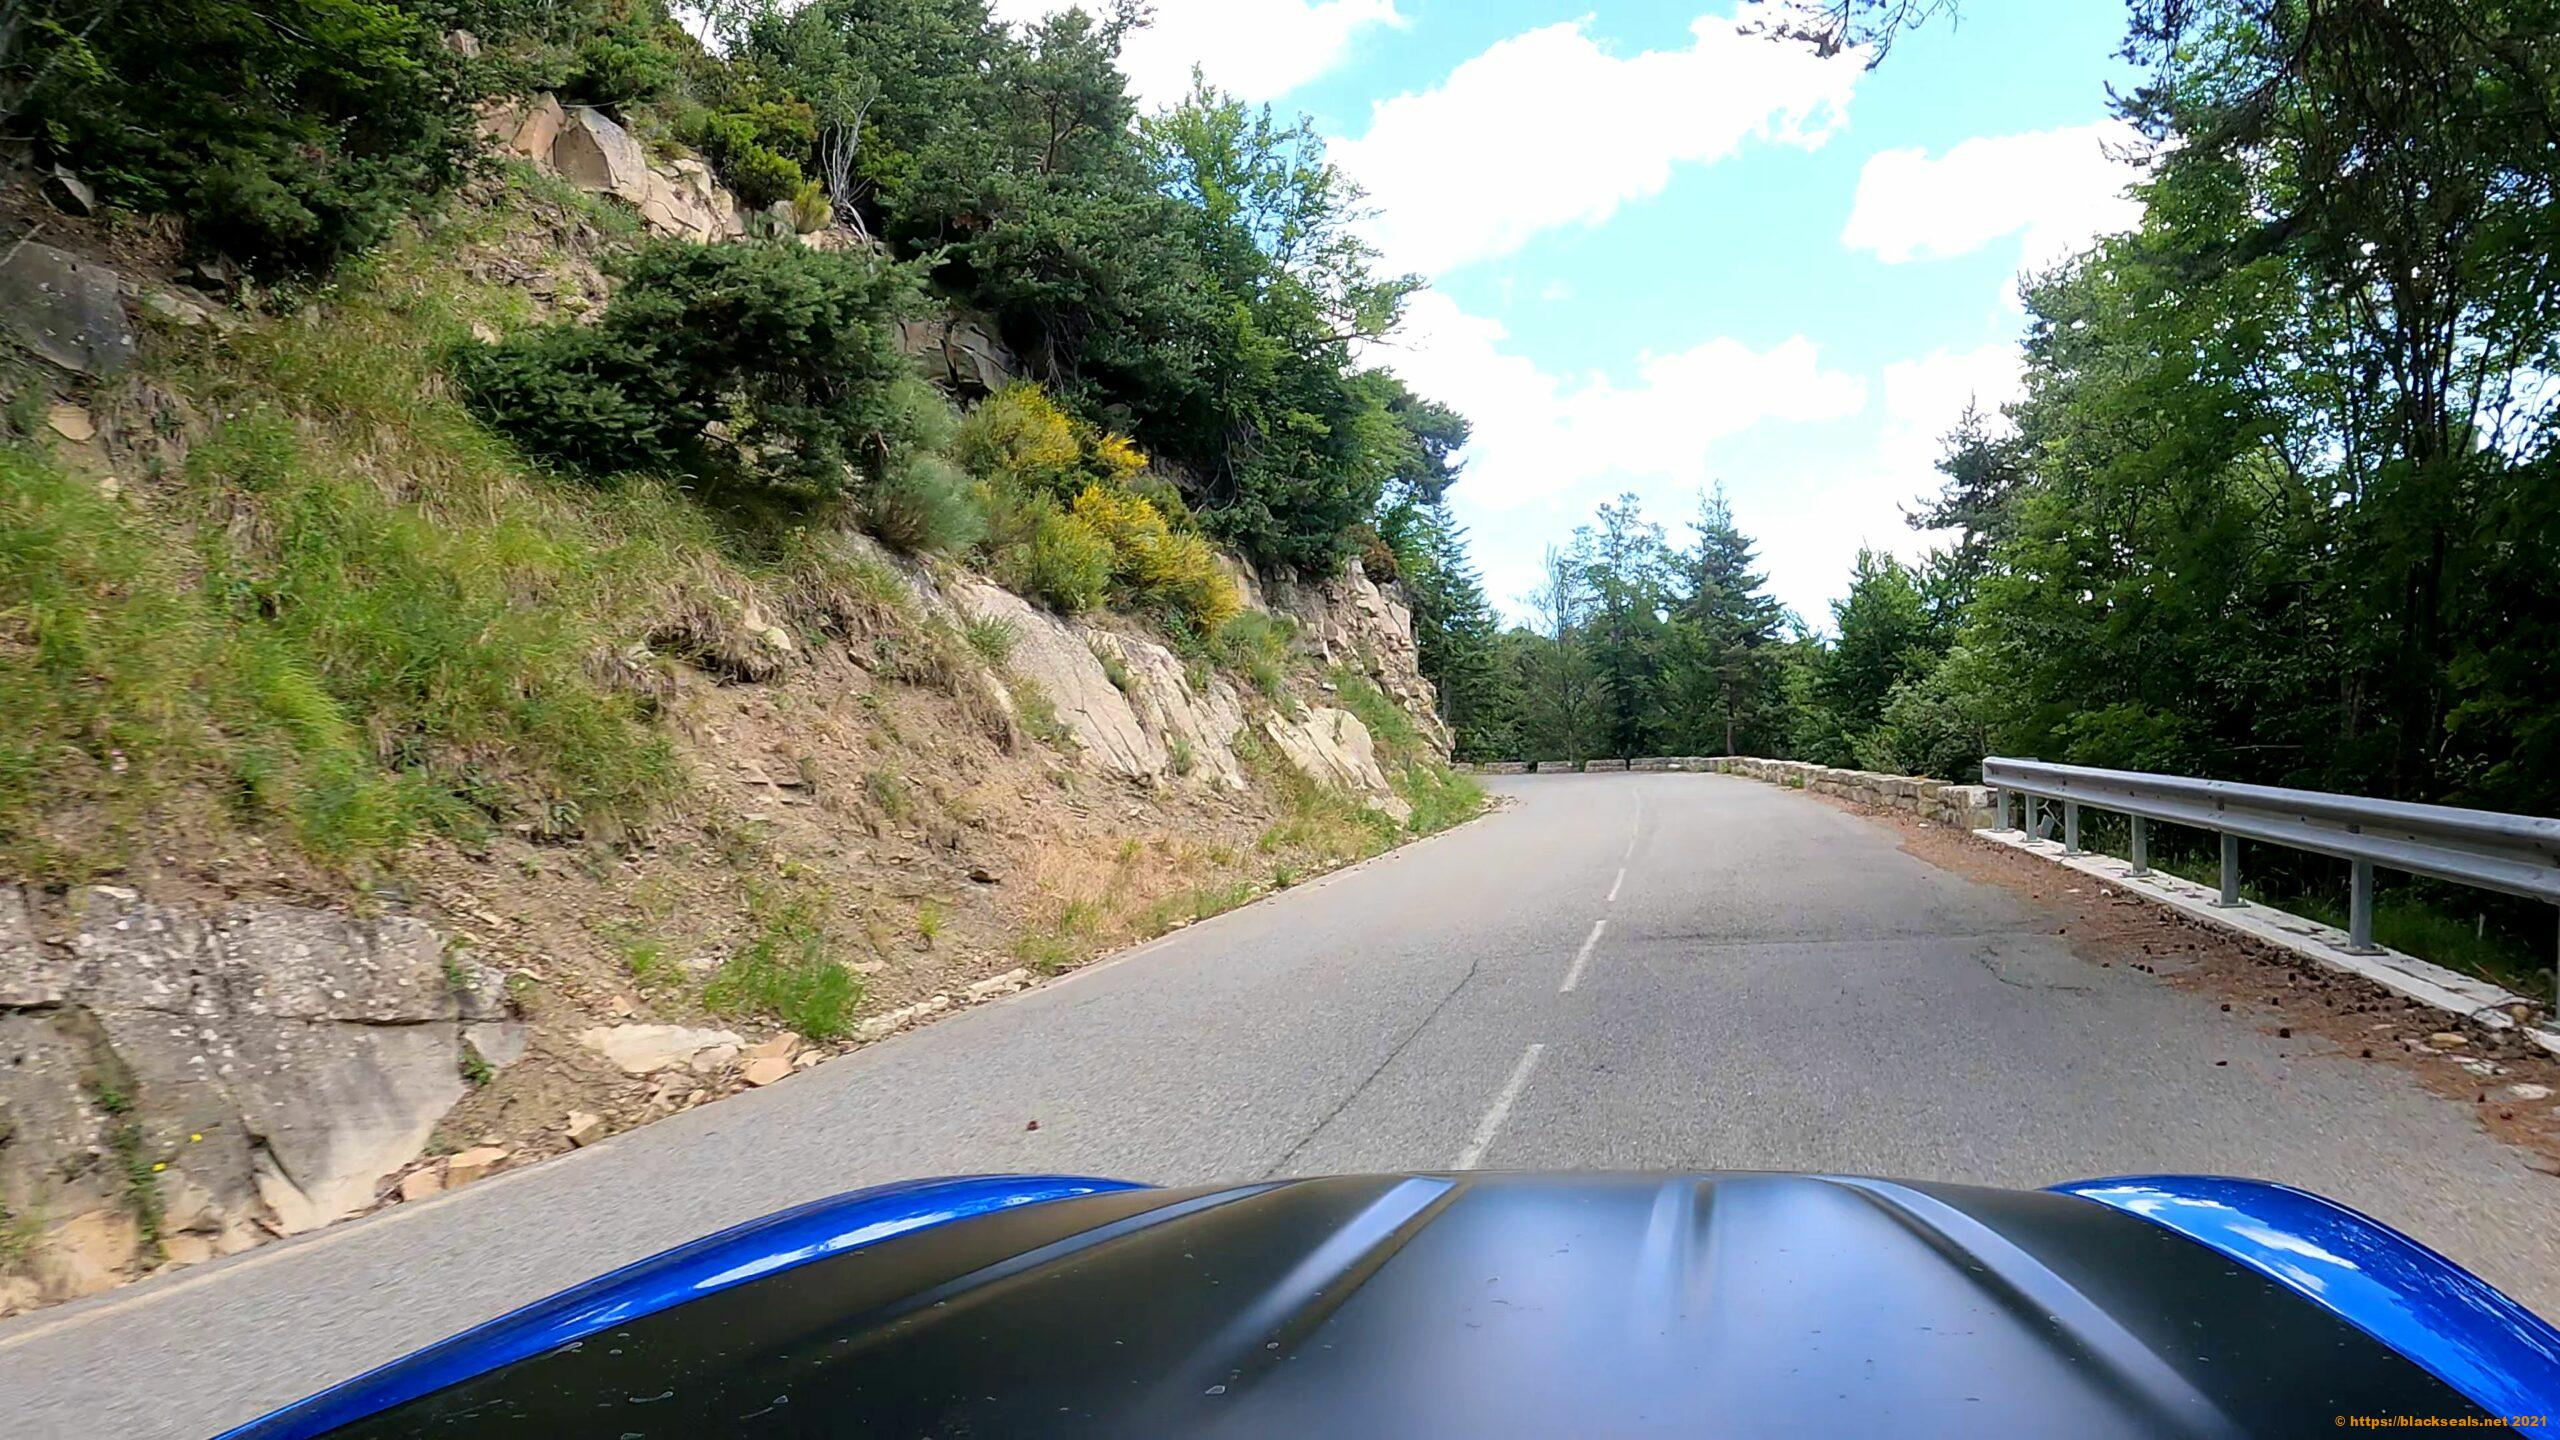 Read more about the article Sommertour 2021: Tag 7 mit Rallye-Spuren